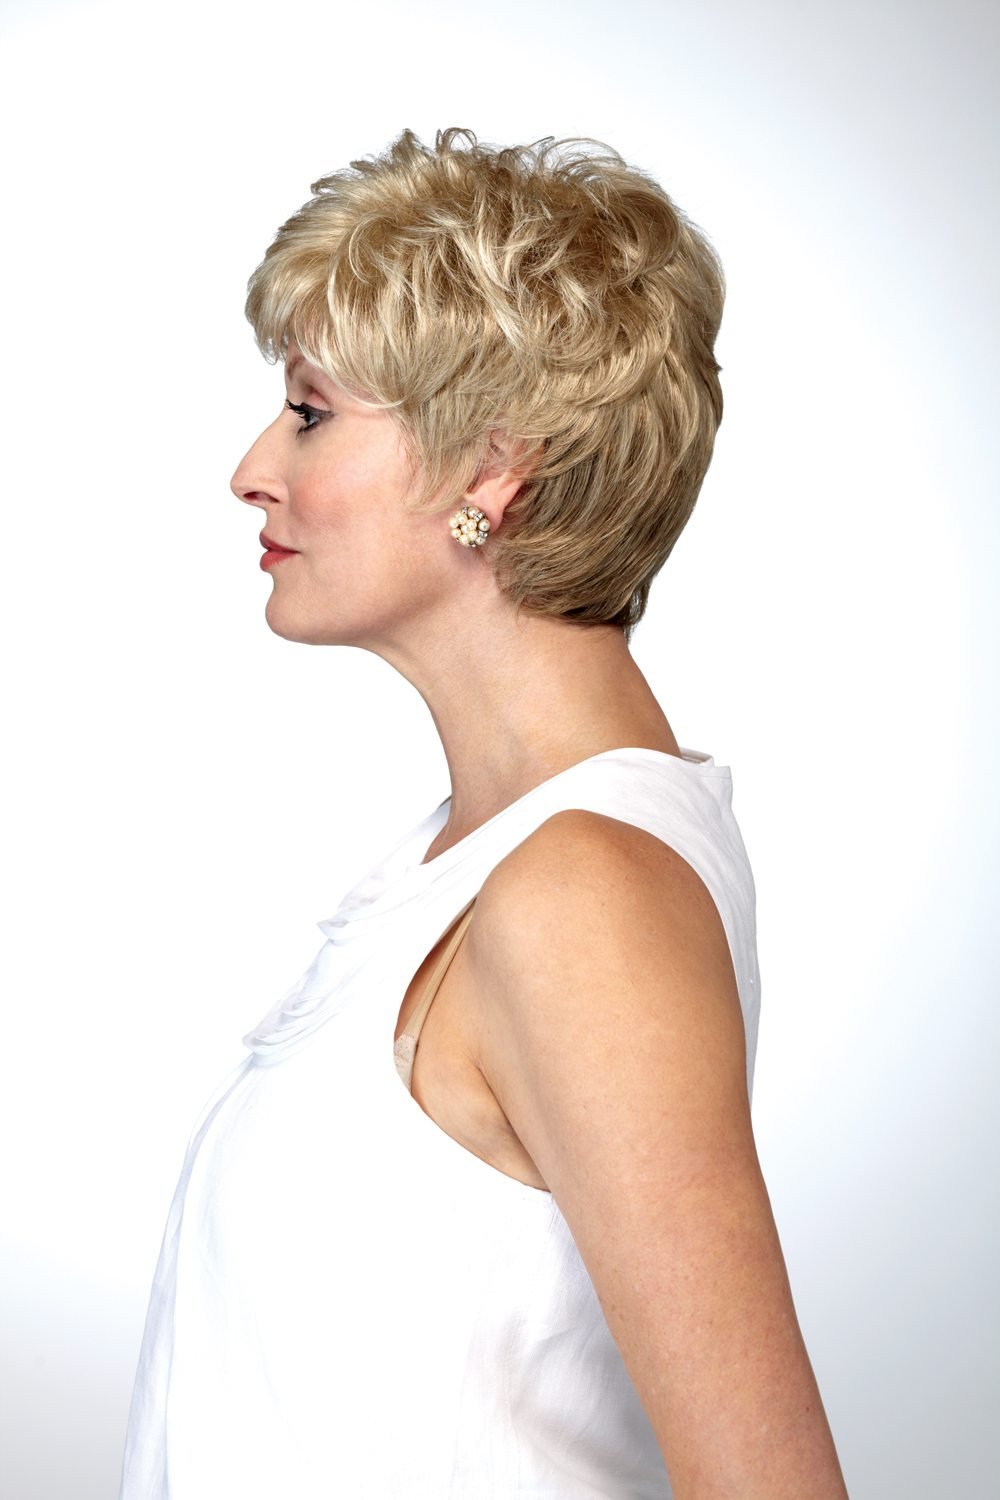 Kim Wig Natural Image - image Kim-Wheat-SIDE-1 on https://purewigs.com